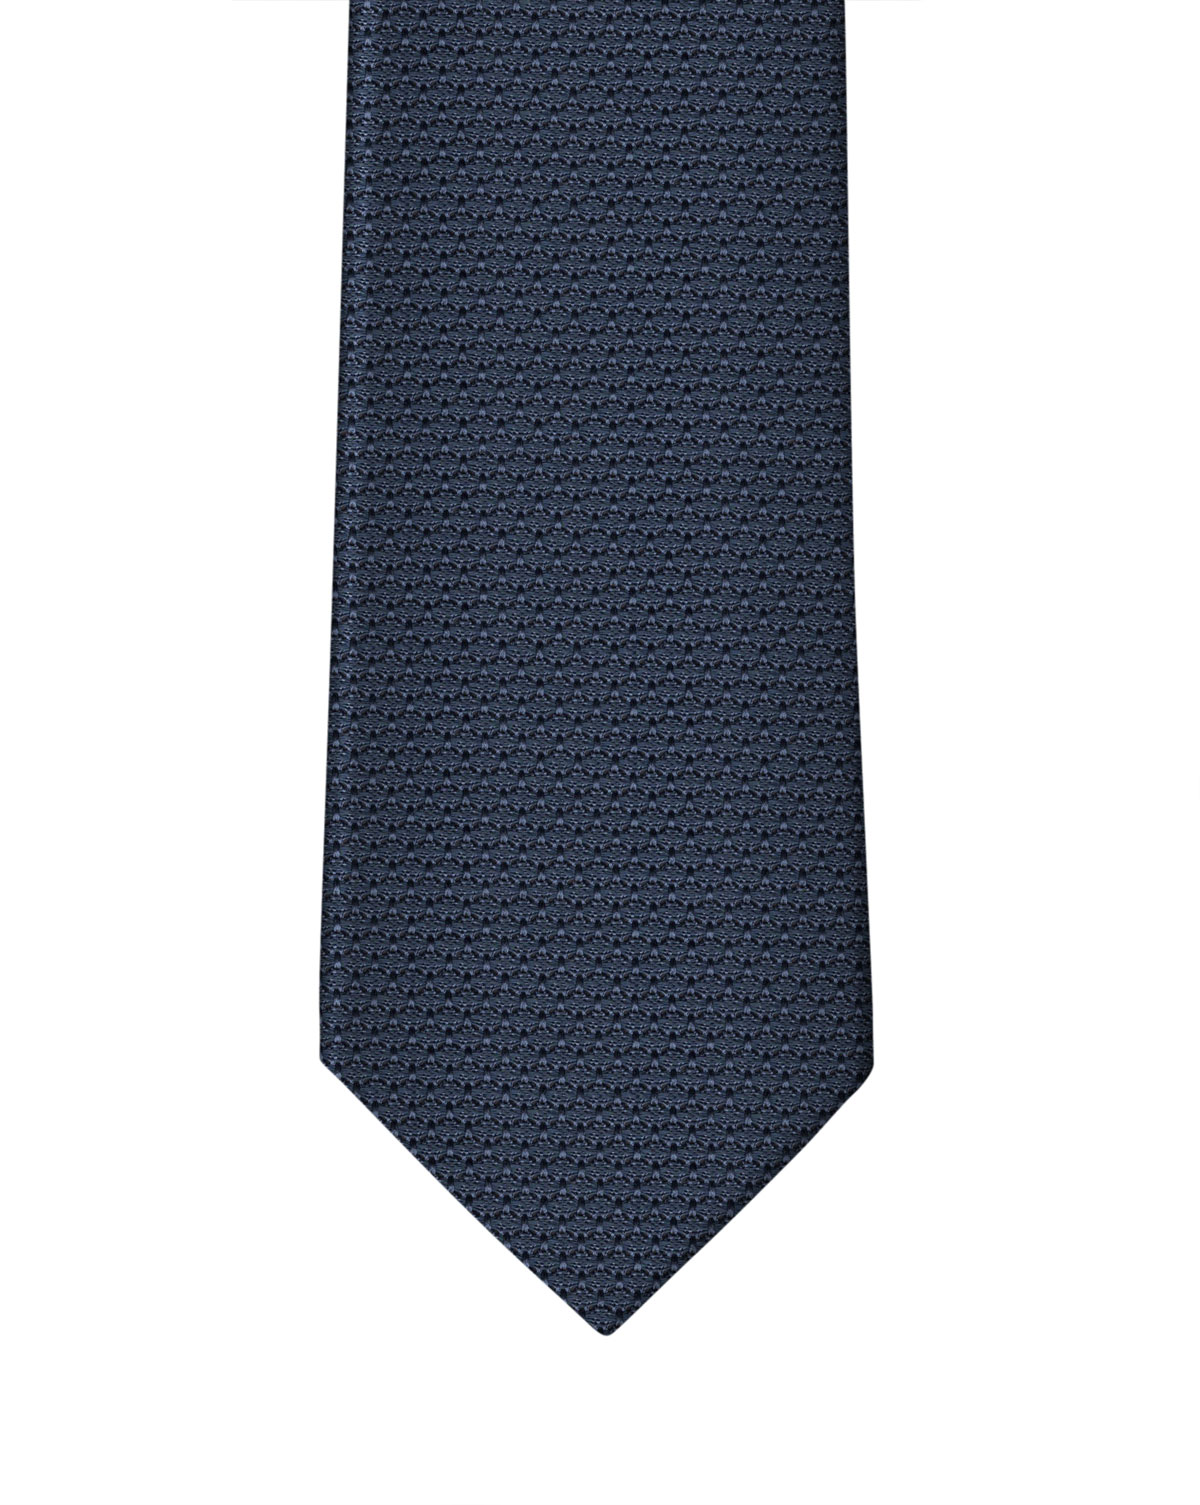 Dark Slate Blue Grenadine Necktie